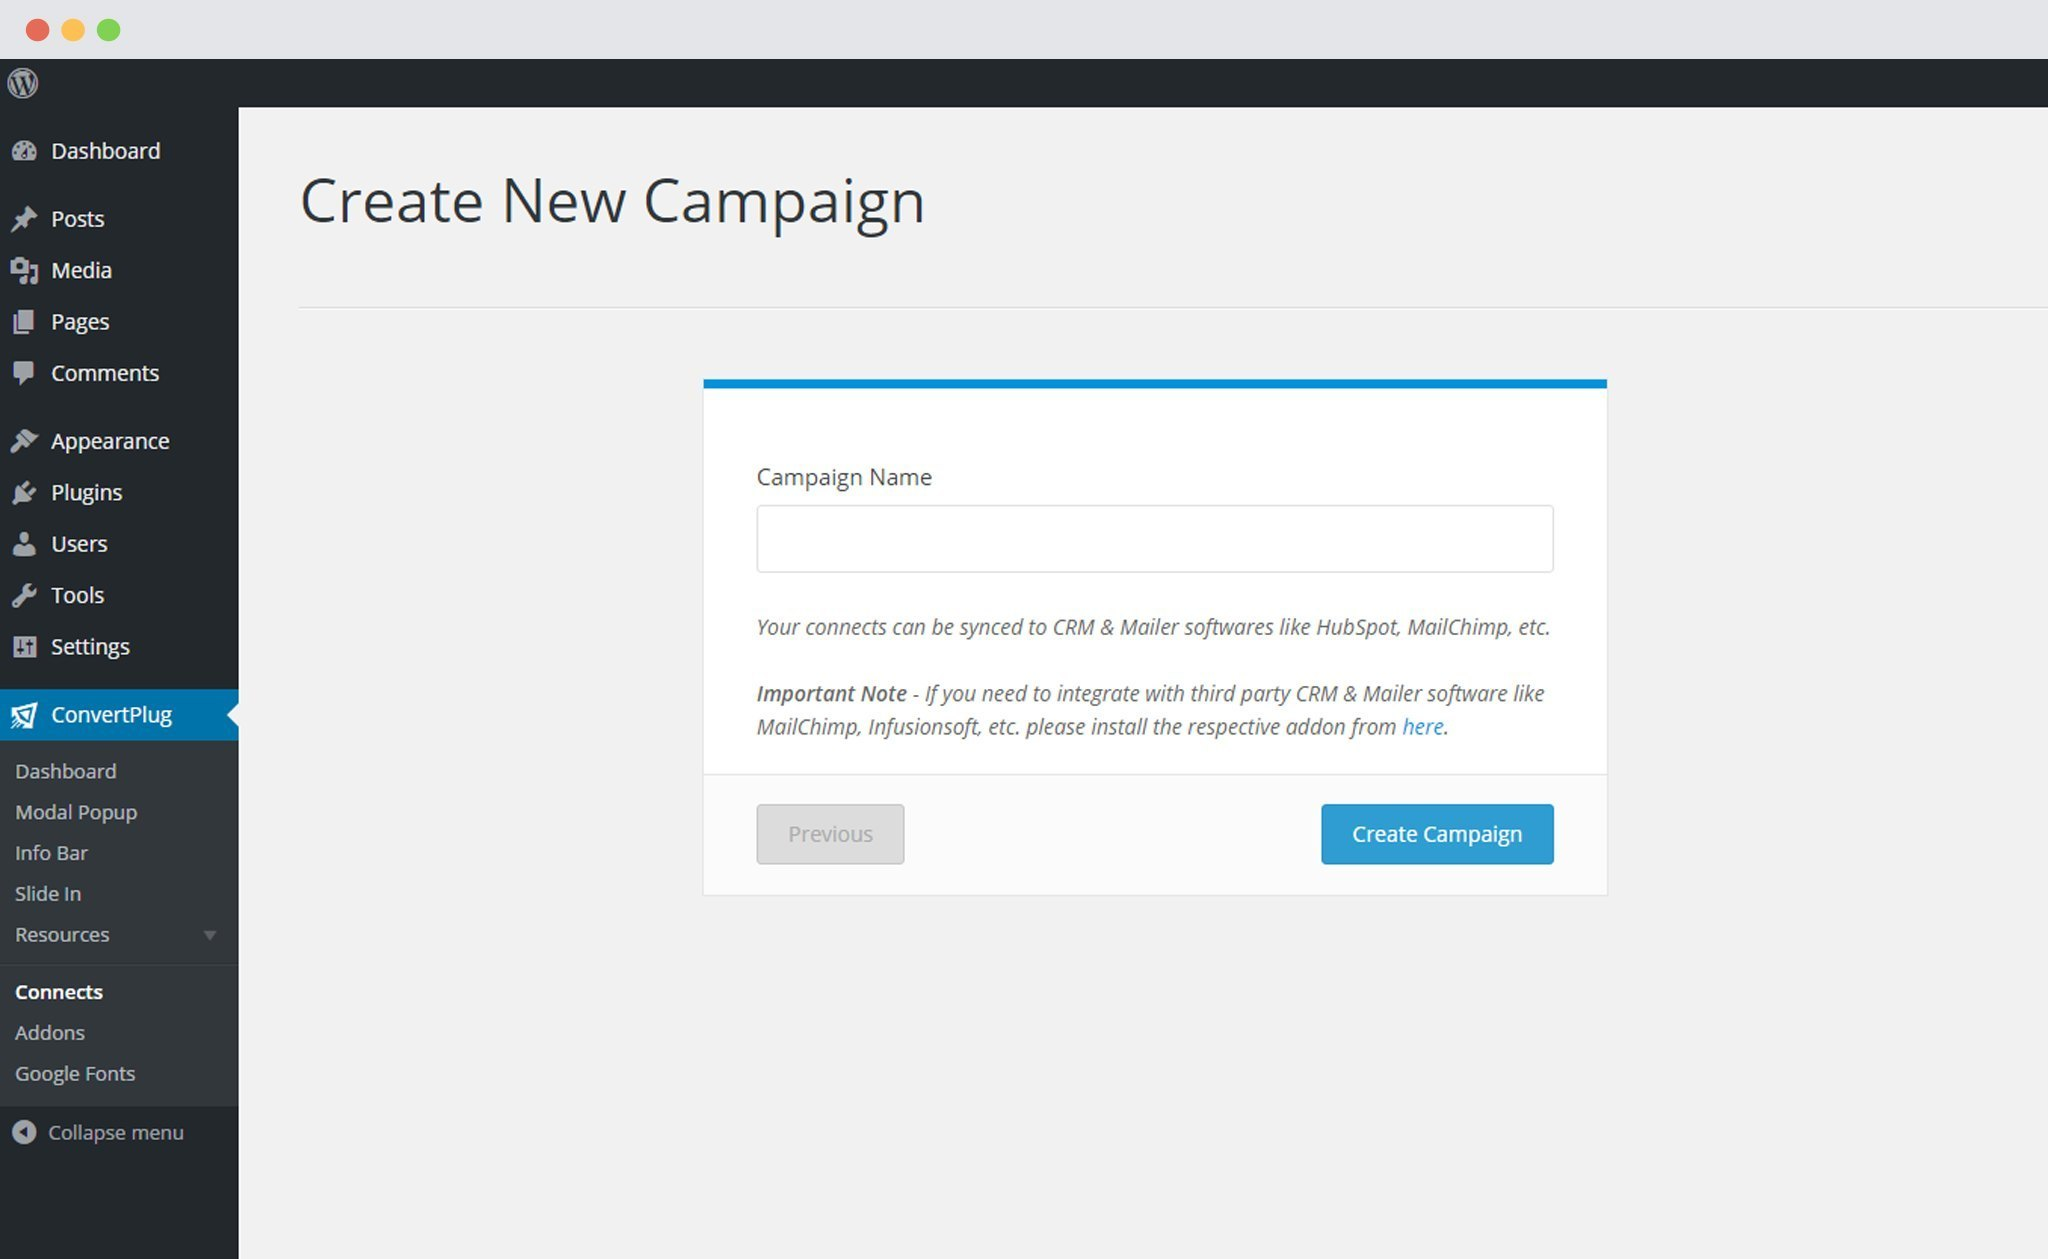 Create campaign by installing addon in ConvertPlus